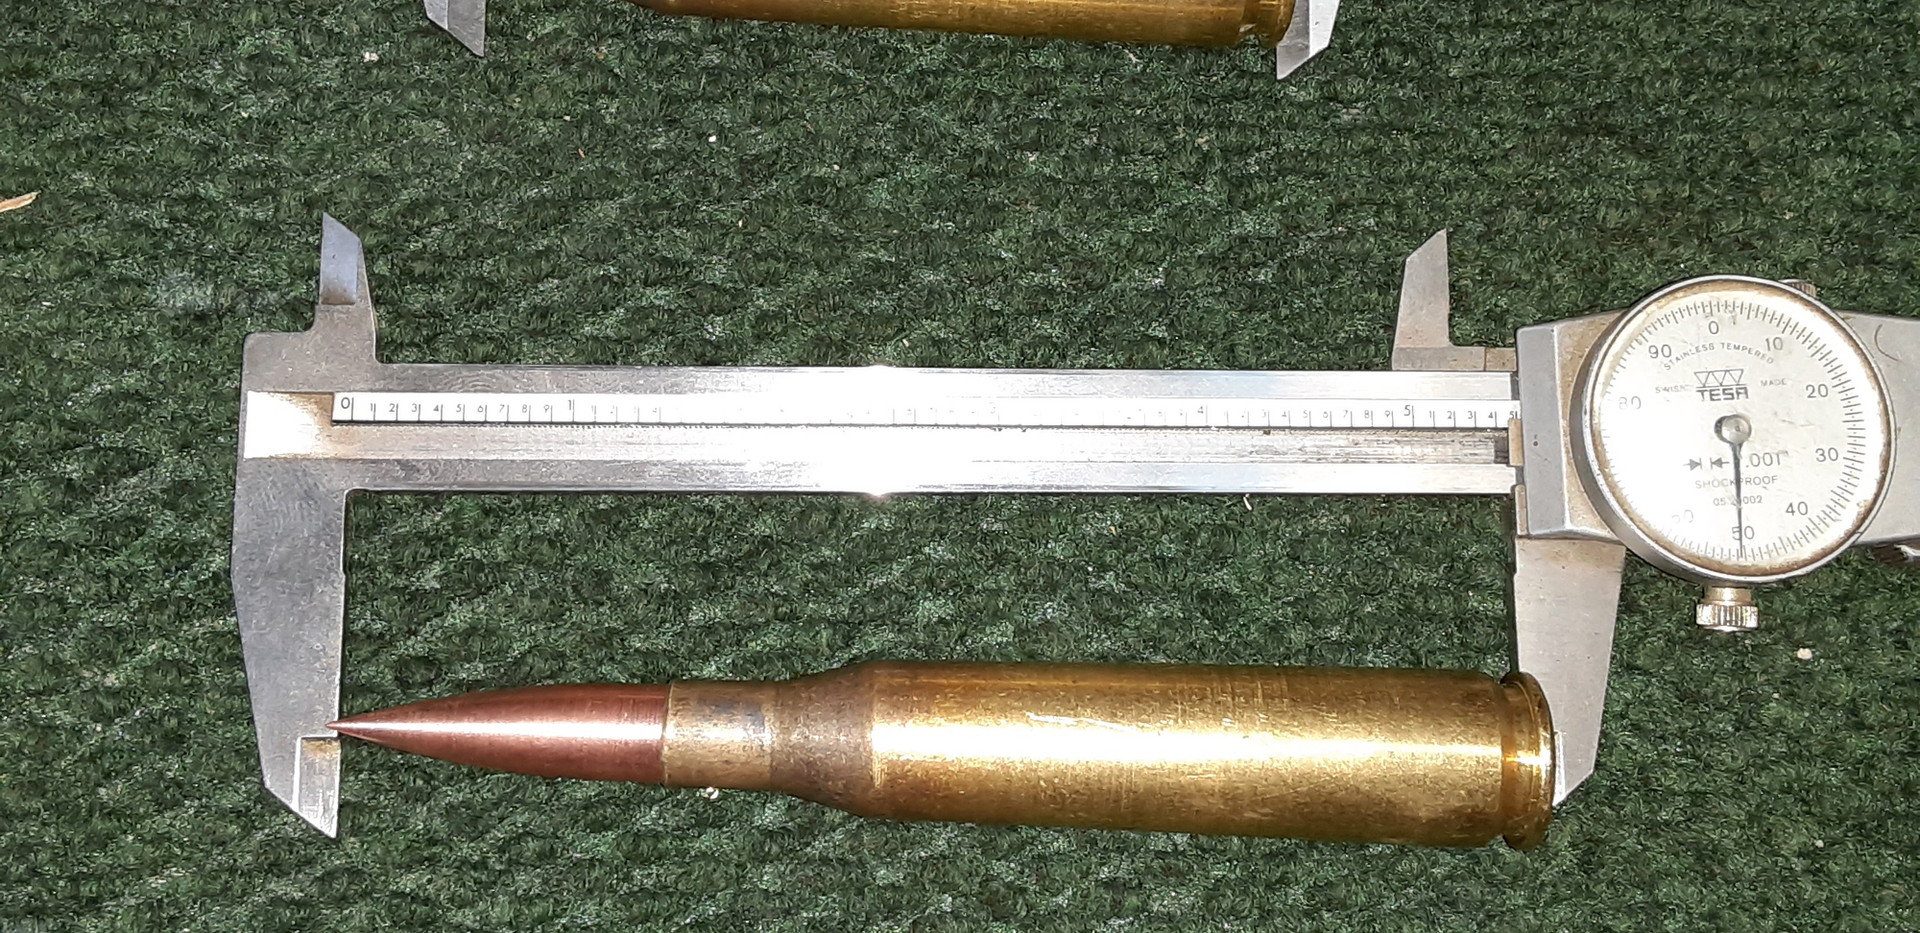 CALIPERS ON BULLETS